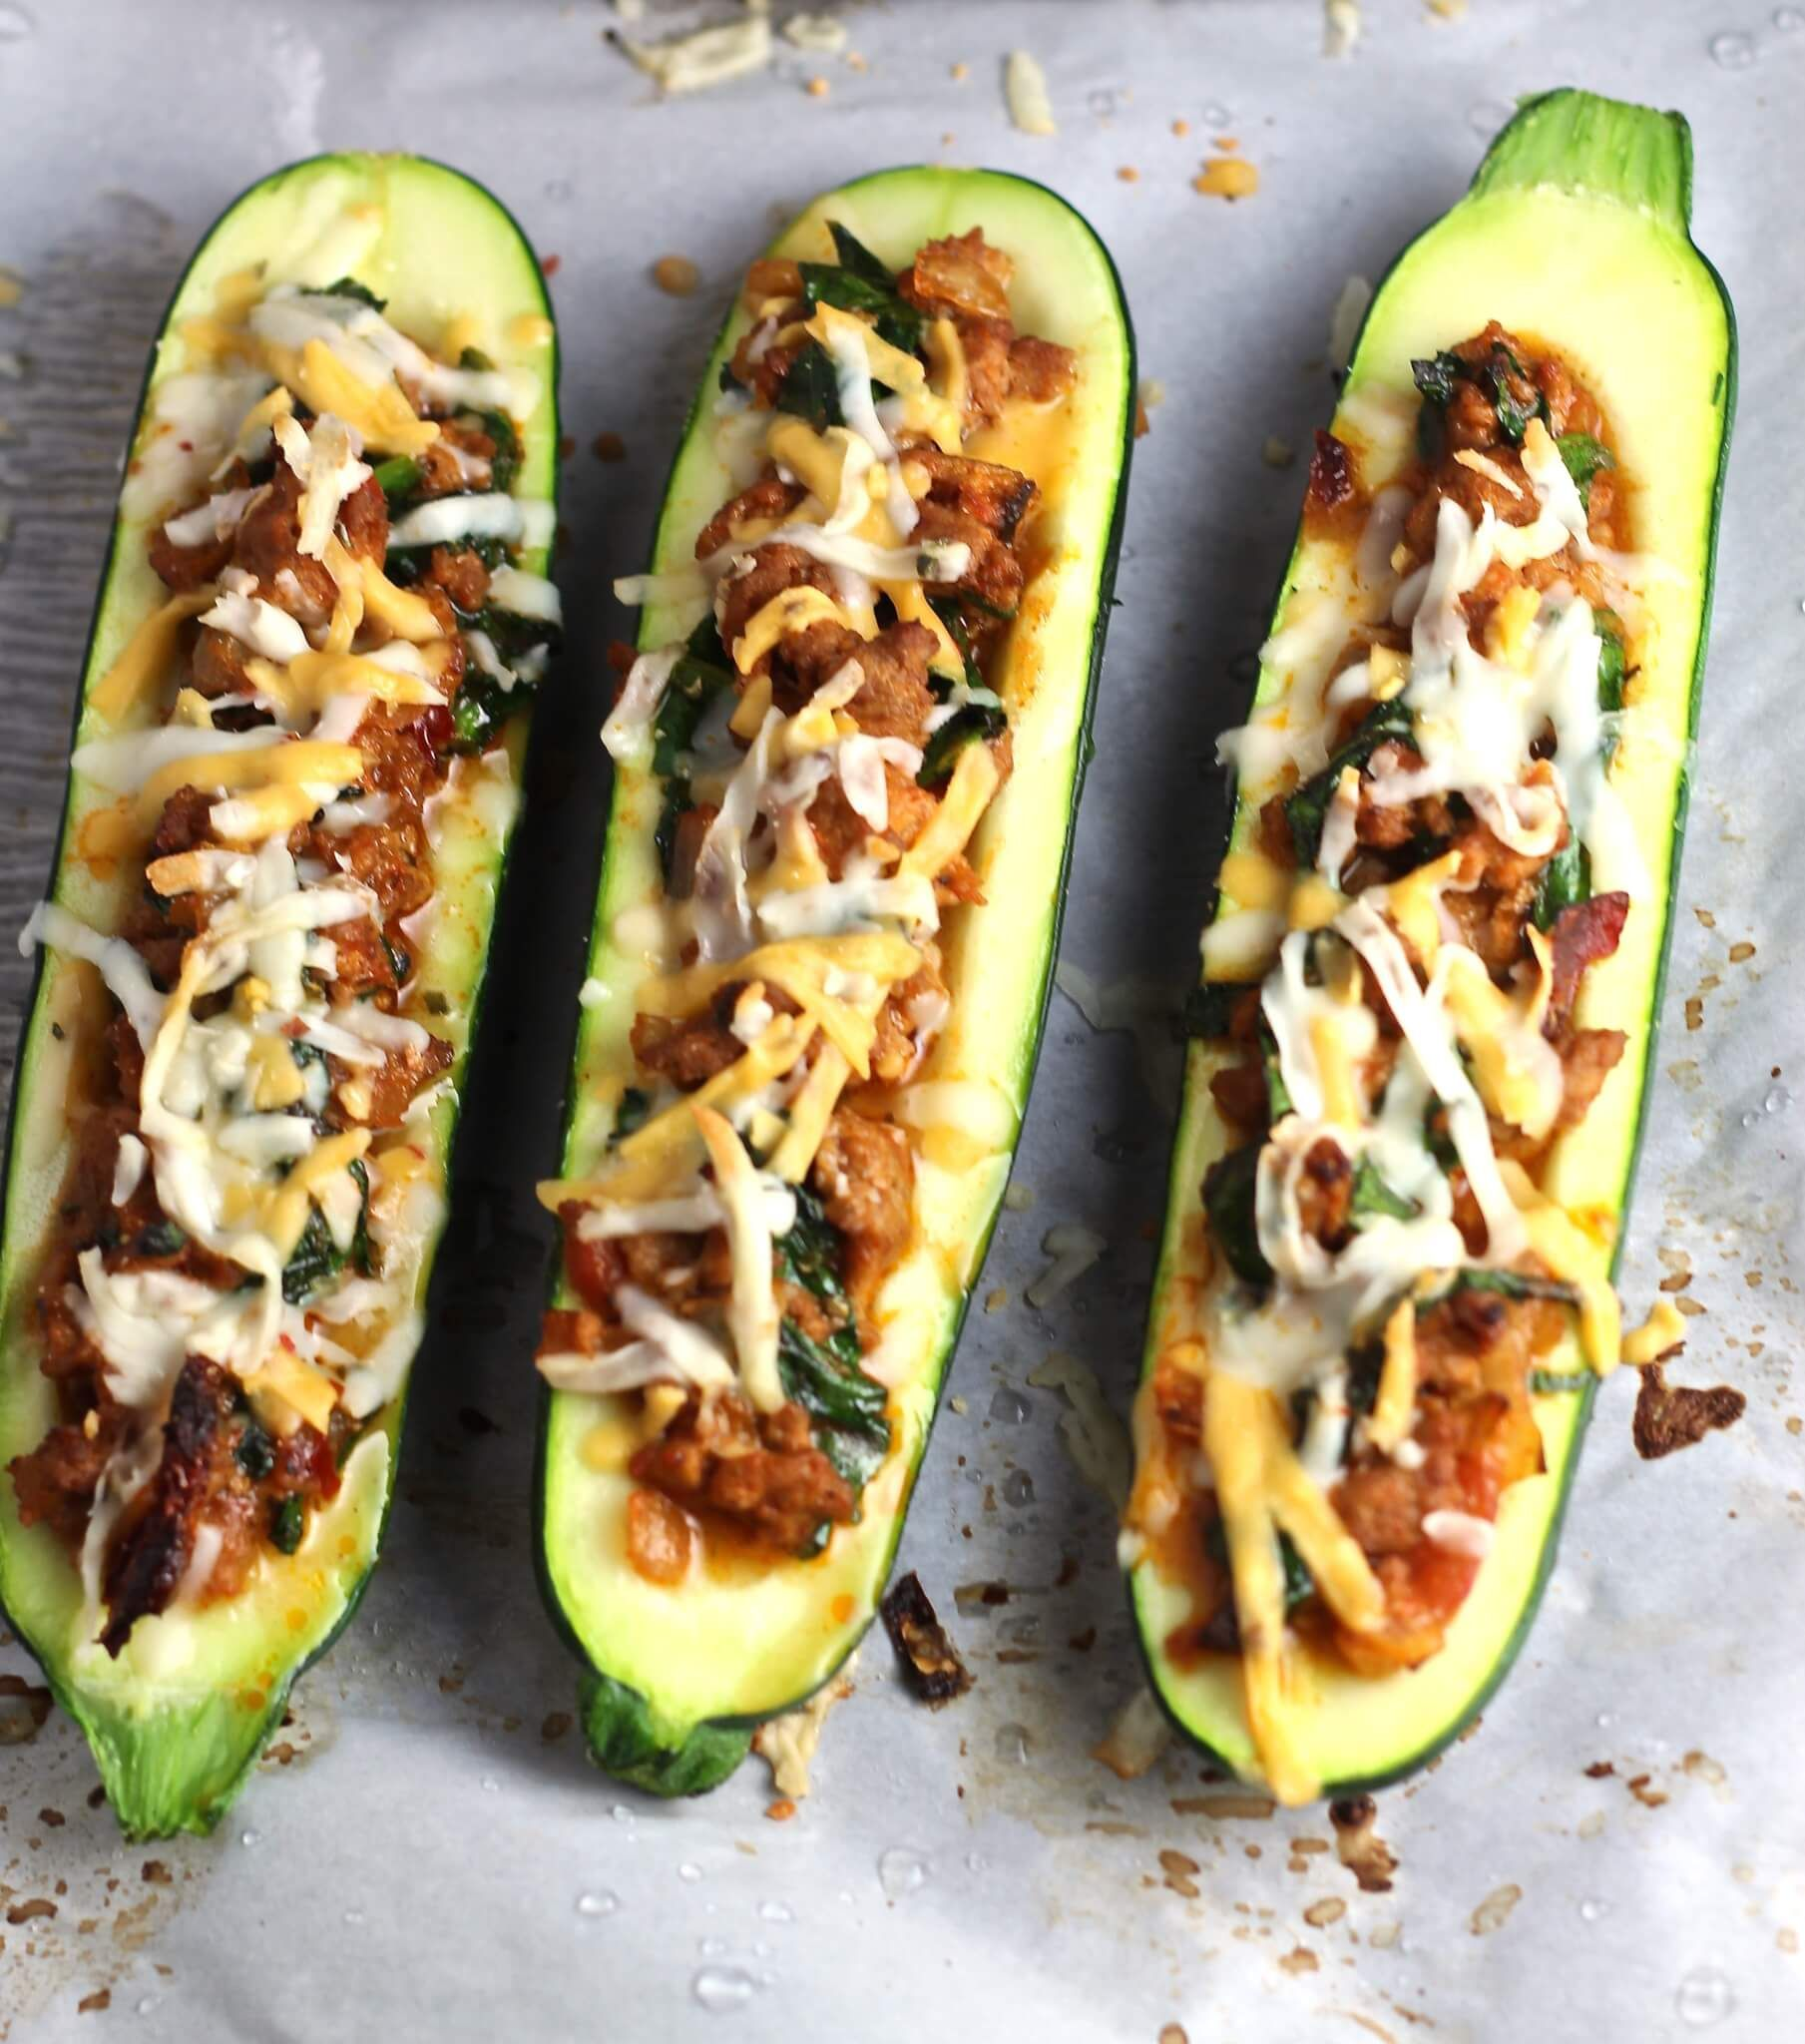 Saucy Stuffed Zucchini Recipe: This Stuffed Zucchini Recipe Is Super Filling With Ground